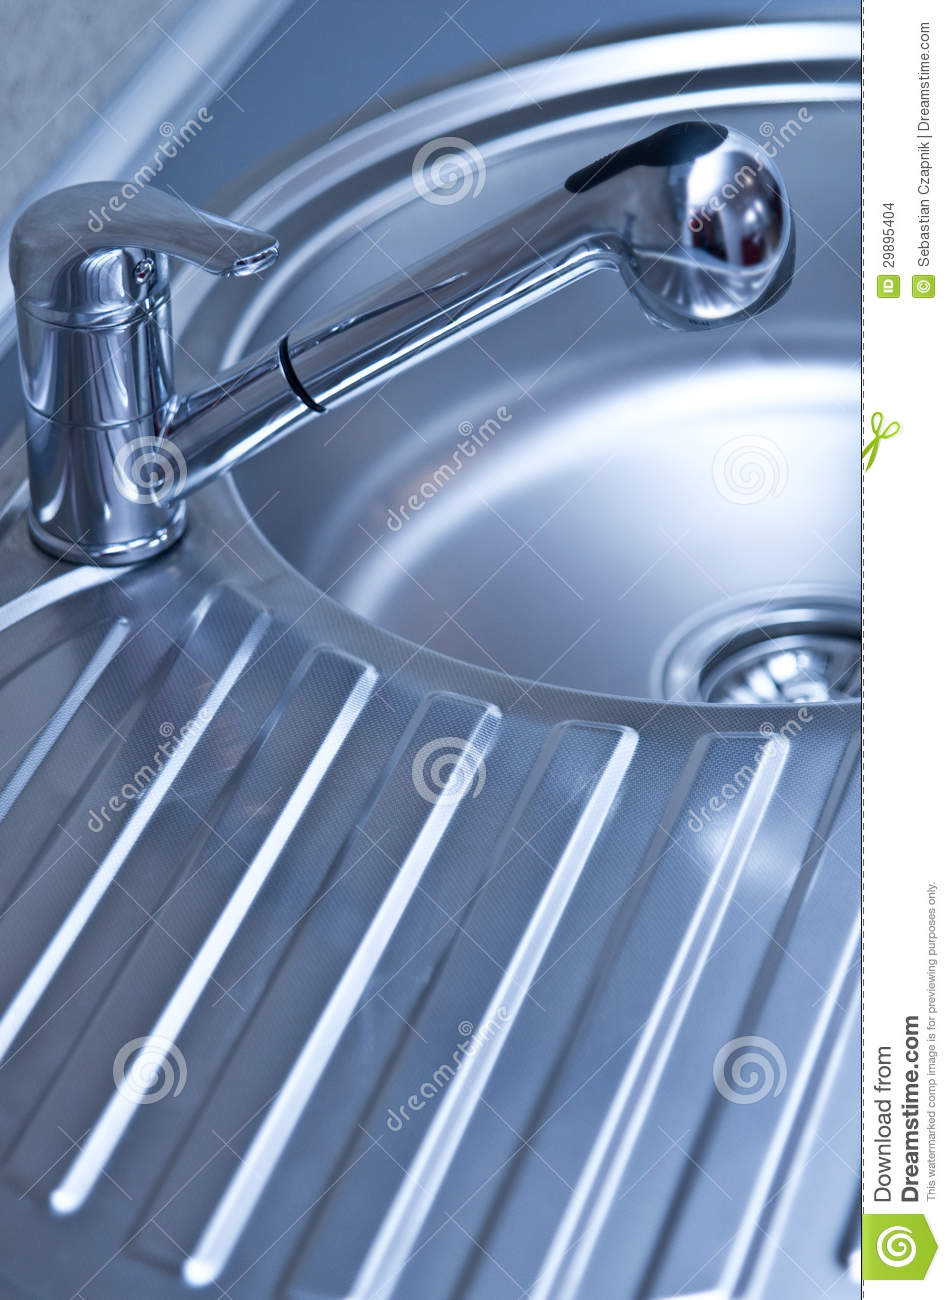 Stainless Steel Sink And Faucet Stock Photo Image Of Ridged Drain